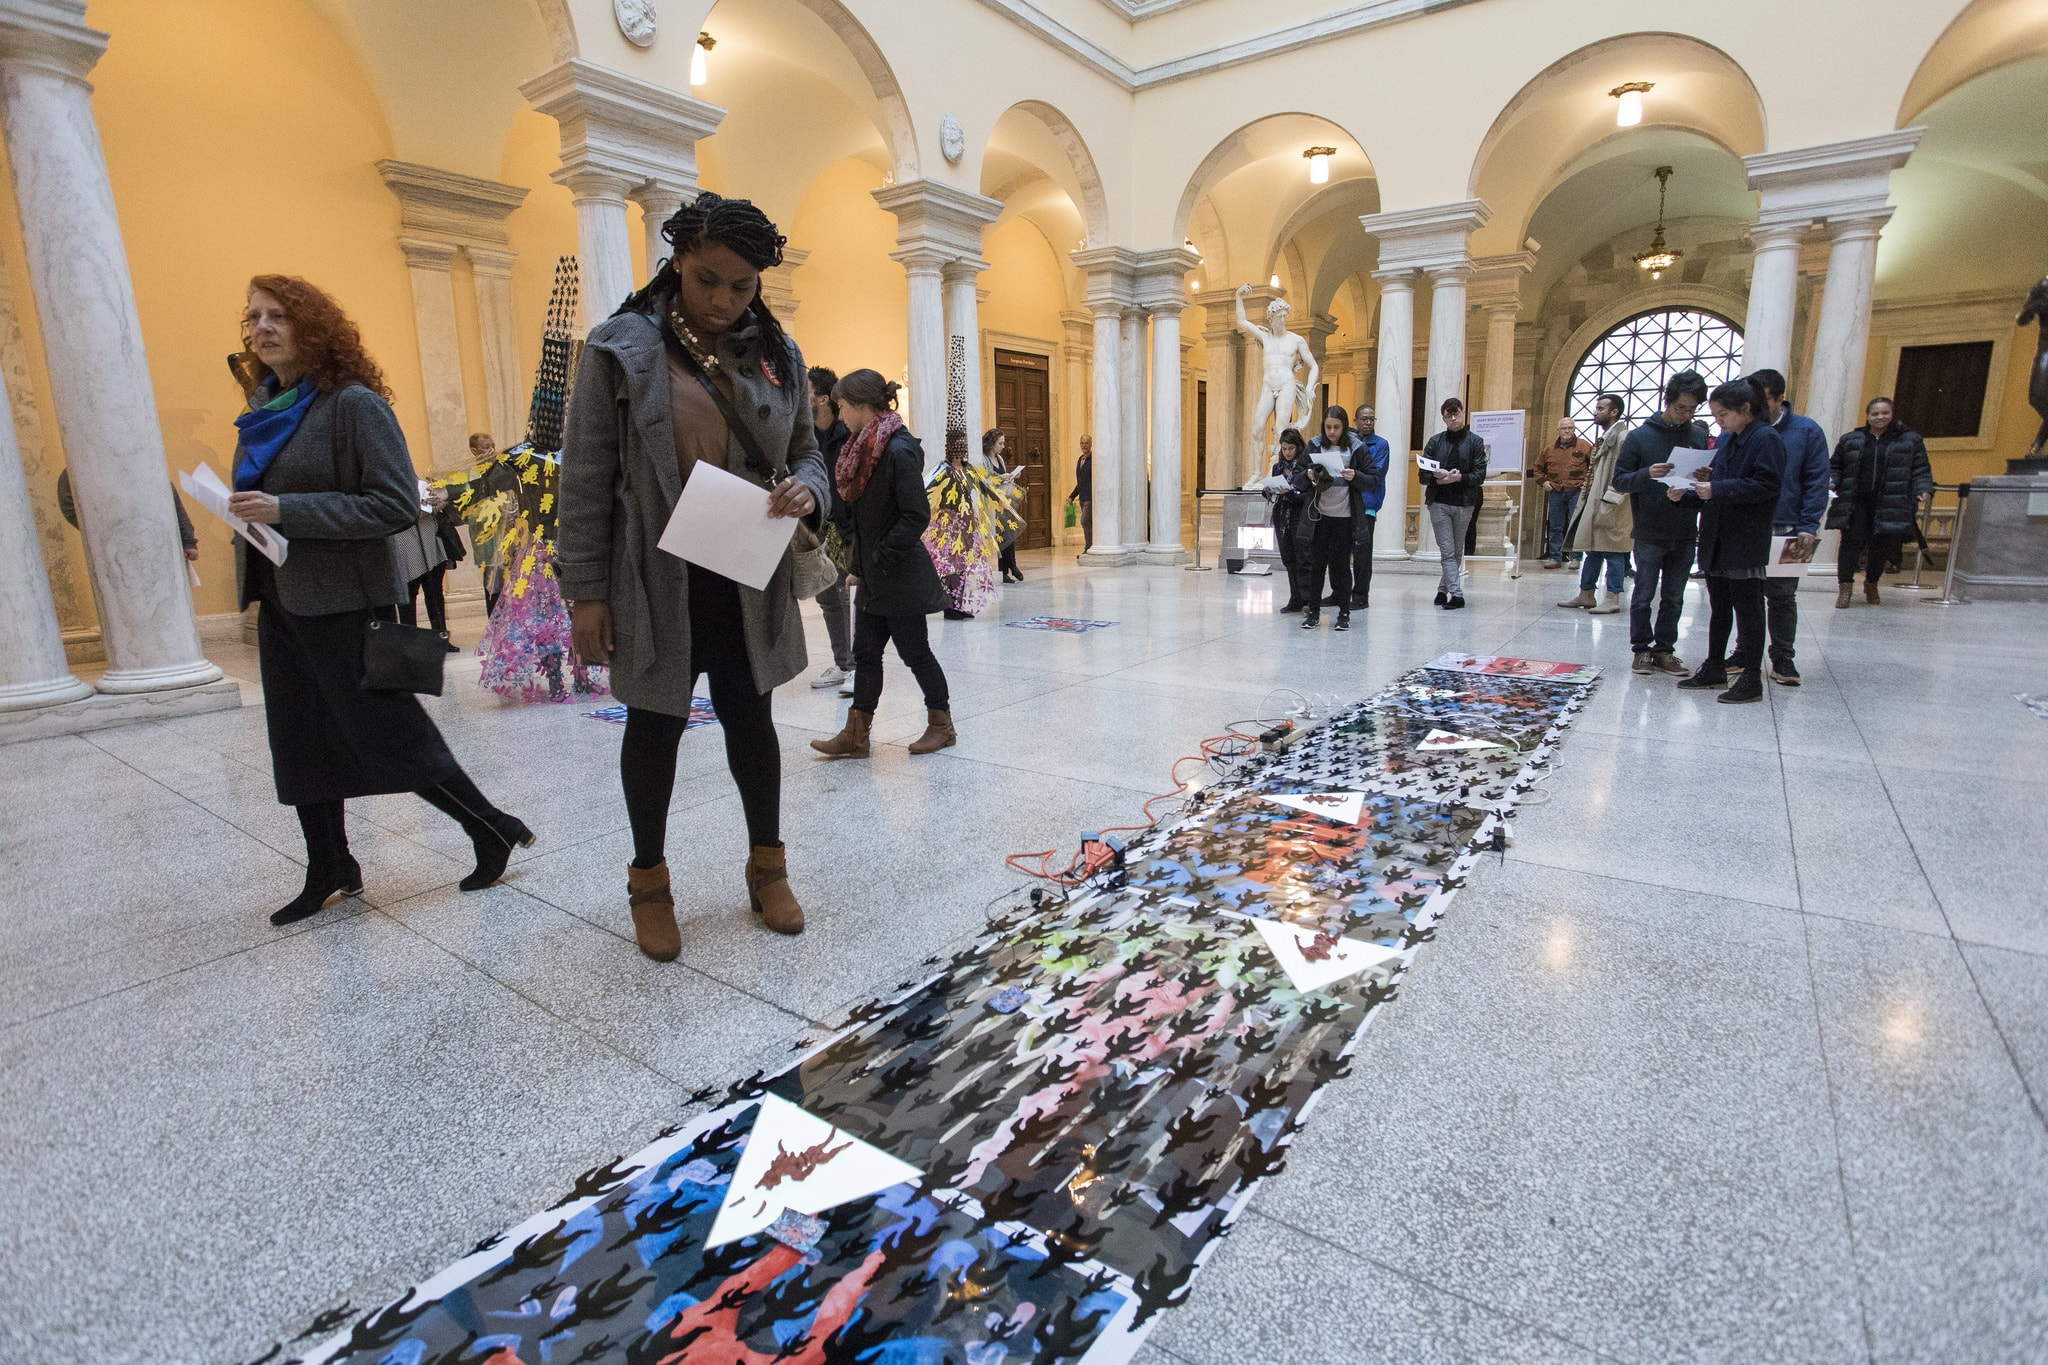 A young black woman stands in a museum inspecting a flat printed piece that is displayed on the floor.